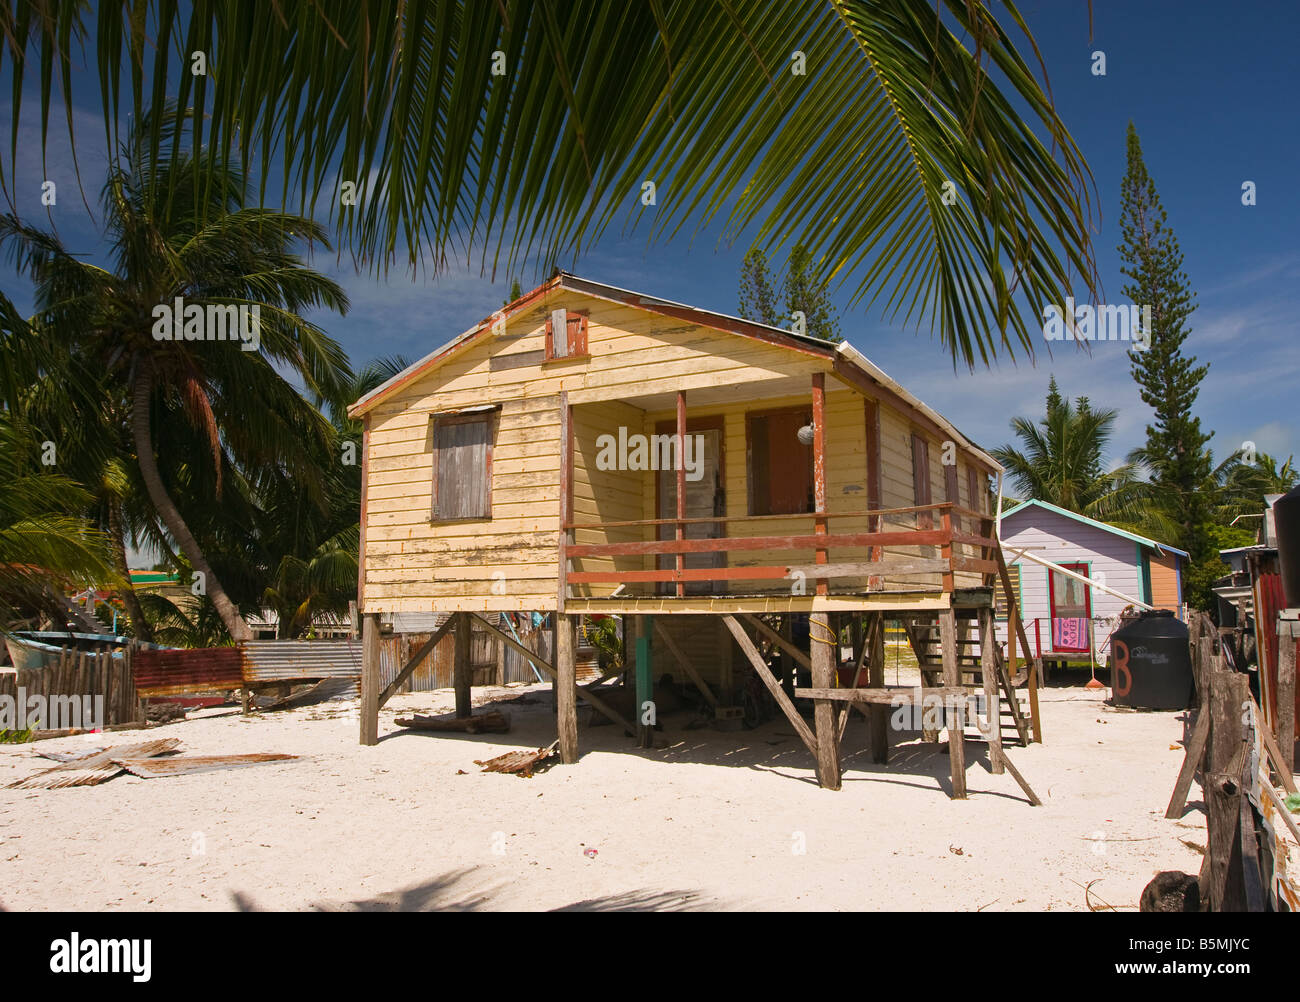 Delightful CAYE CAULKER BELIZE Wooden House On Stilts On Sand Beach With Palm Trees